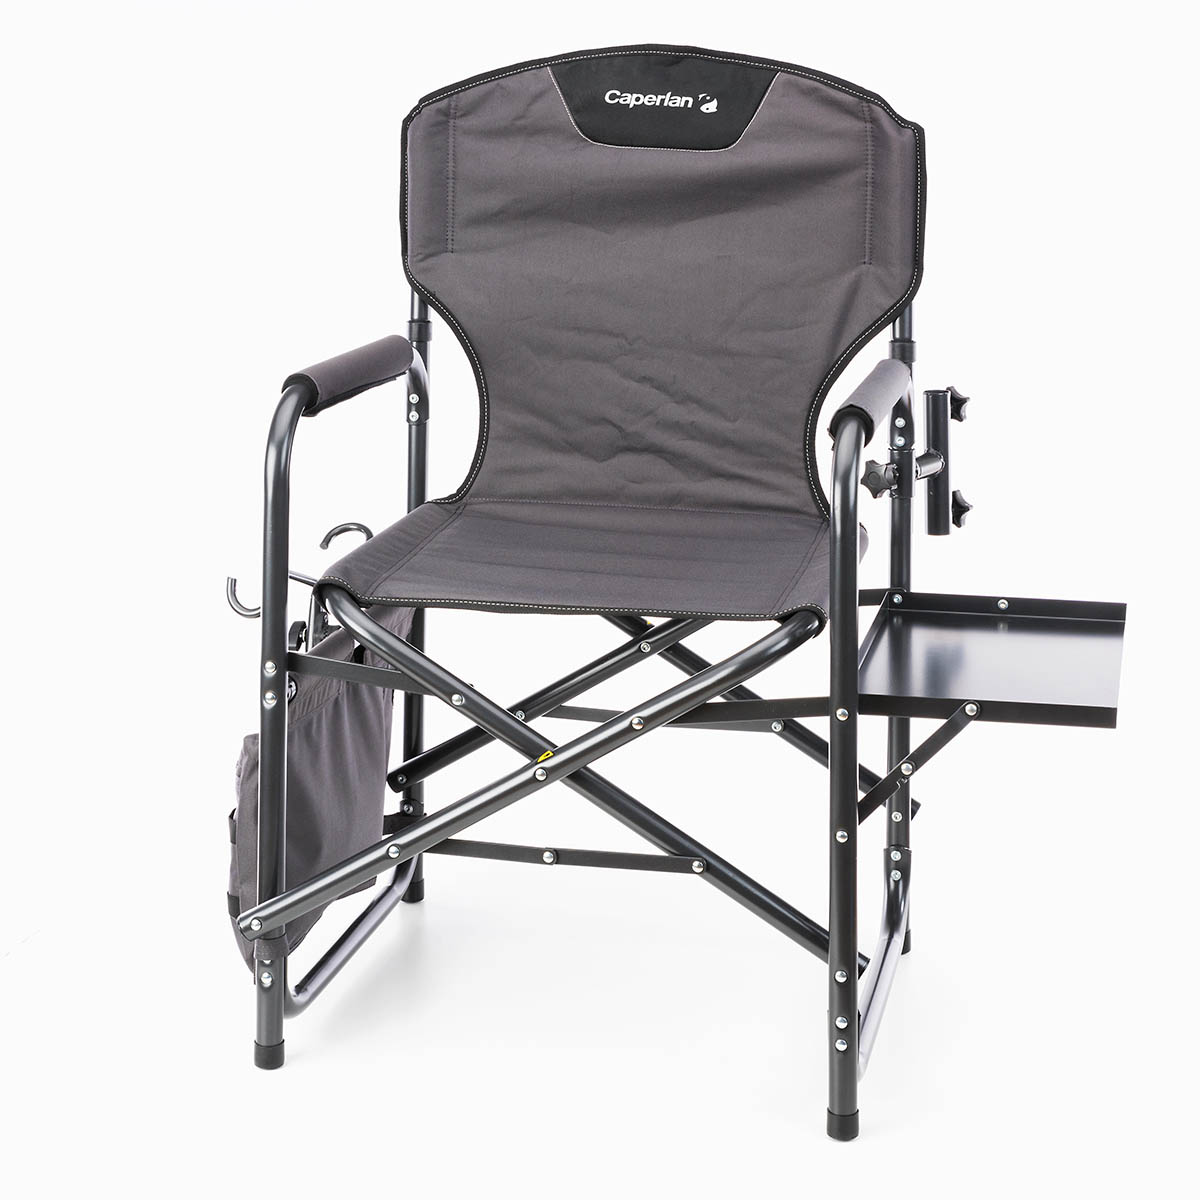 Siege Pliant Peche Essenseat Organizer Caperlan Decathlon